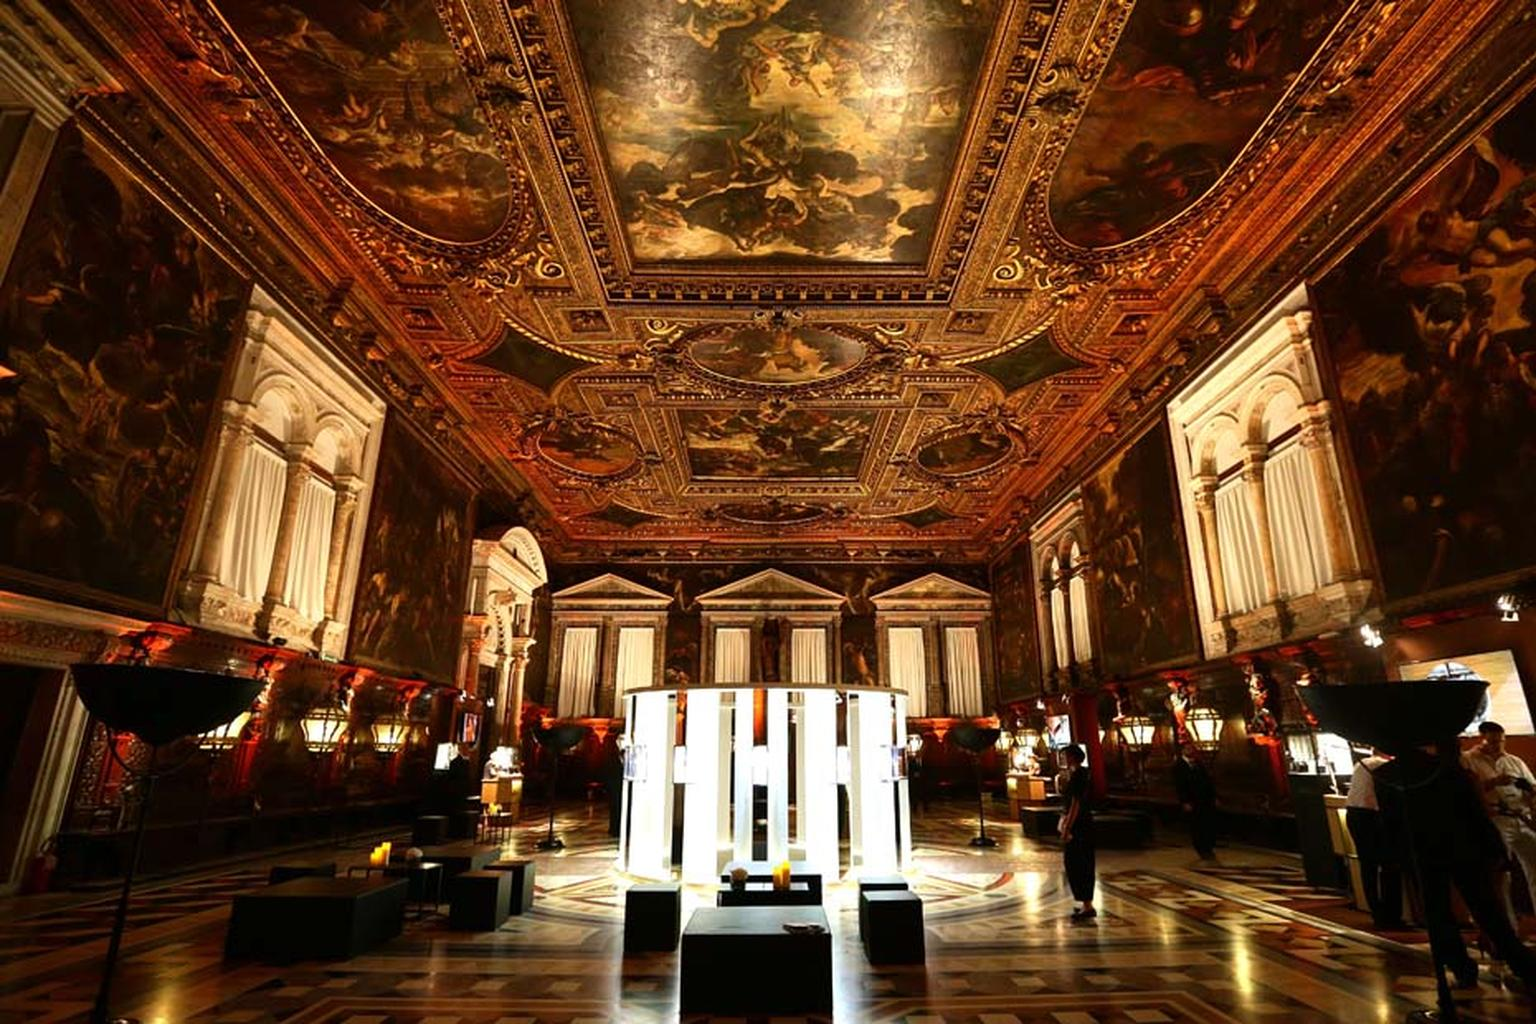 Jaeger-LeCoultre has committed to a three-year restoration programme of the 1478 Scuola Grade di San Rocco in Venice, whose walls and ceilings are decorated with paintings by Tintoretto.